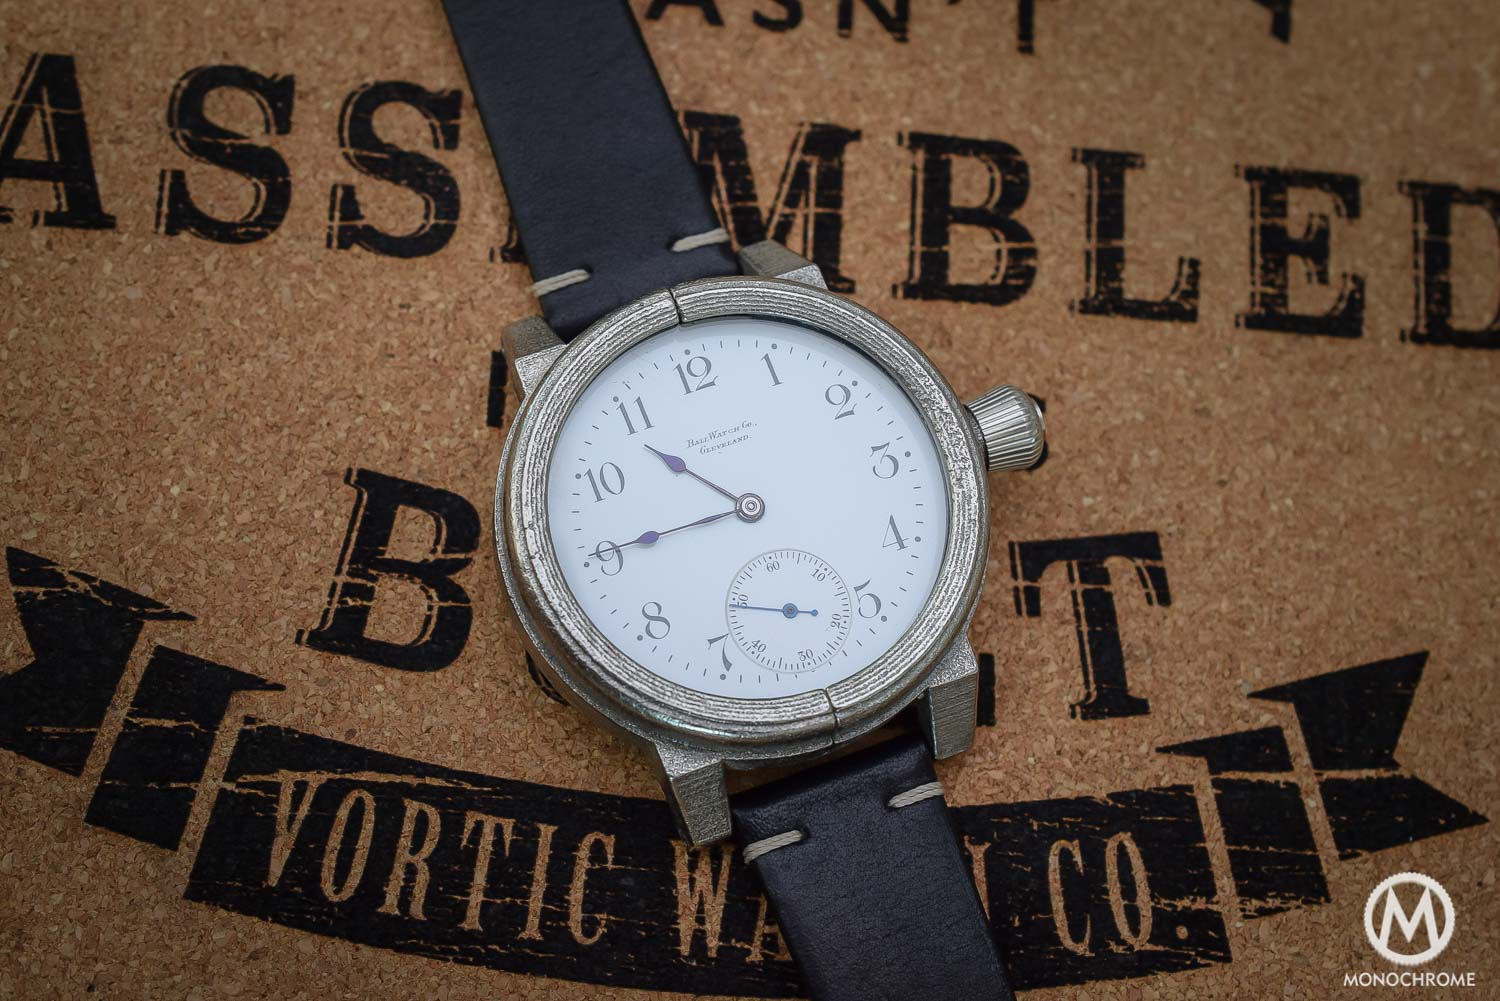 Vortic Watch Co - antique movements and 3D printed cases - 4